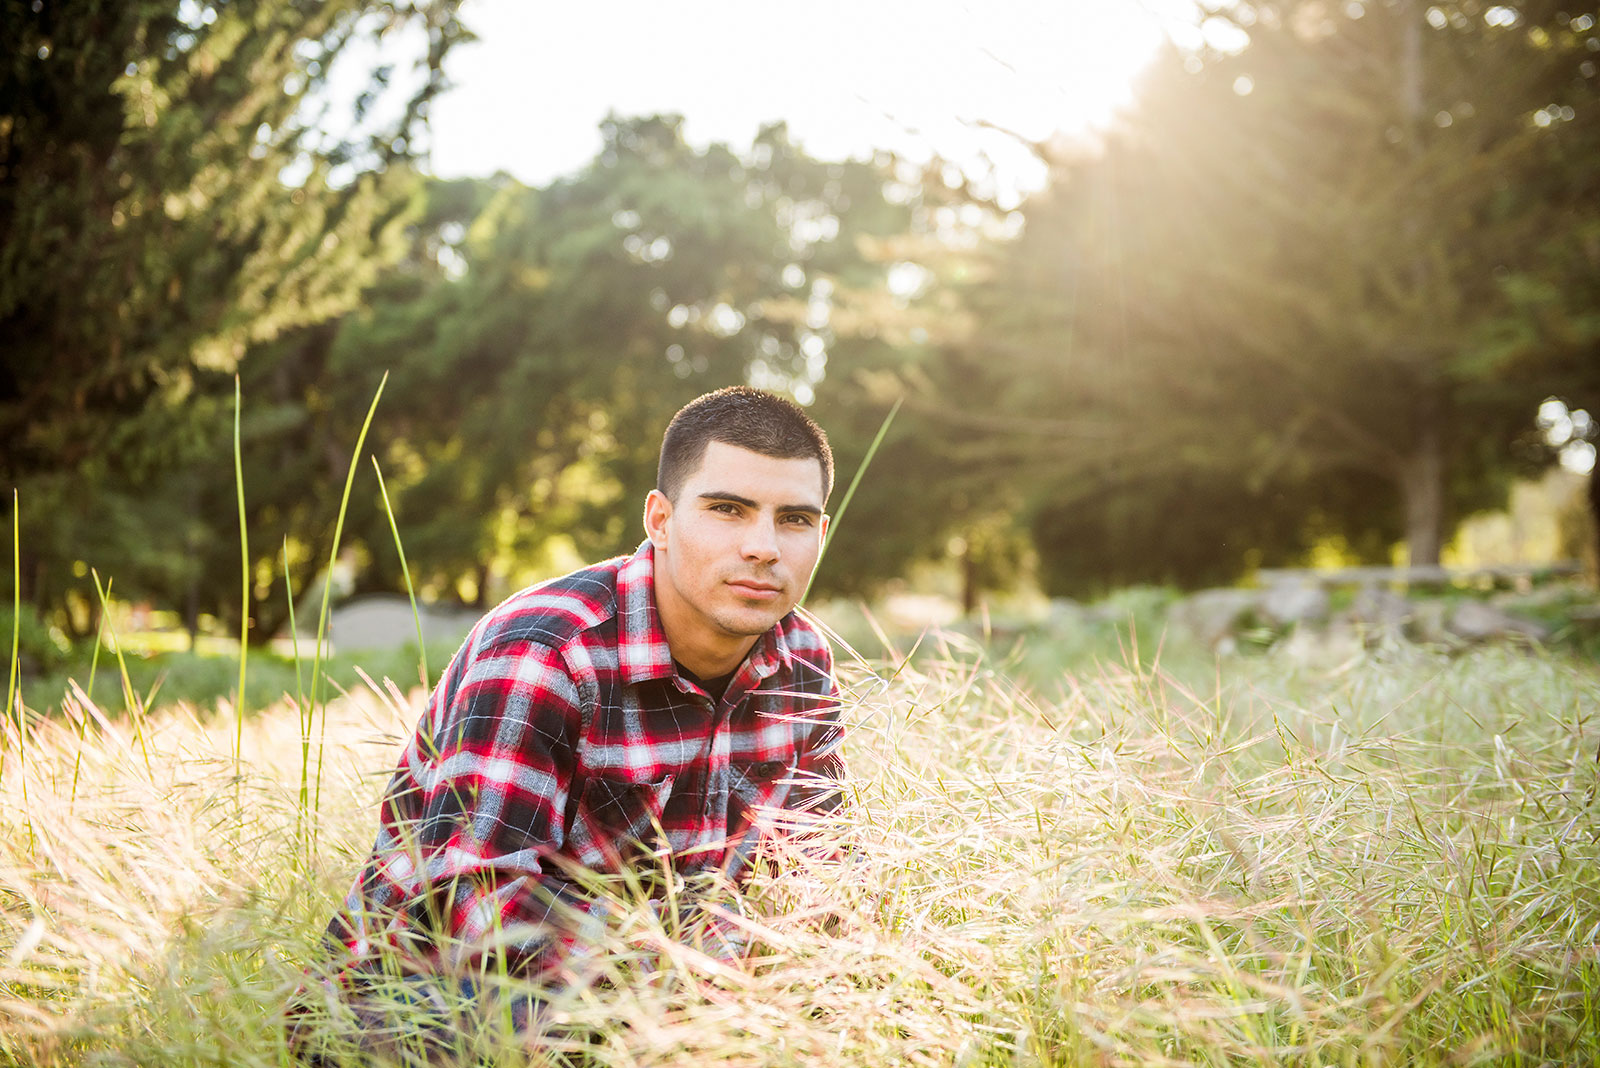 sotelo-senior-hollister-photography-01